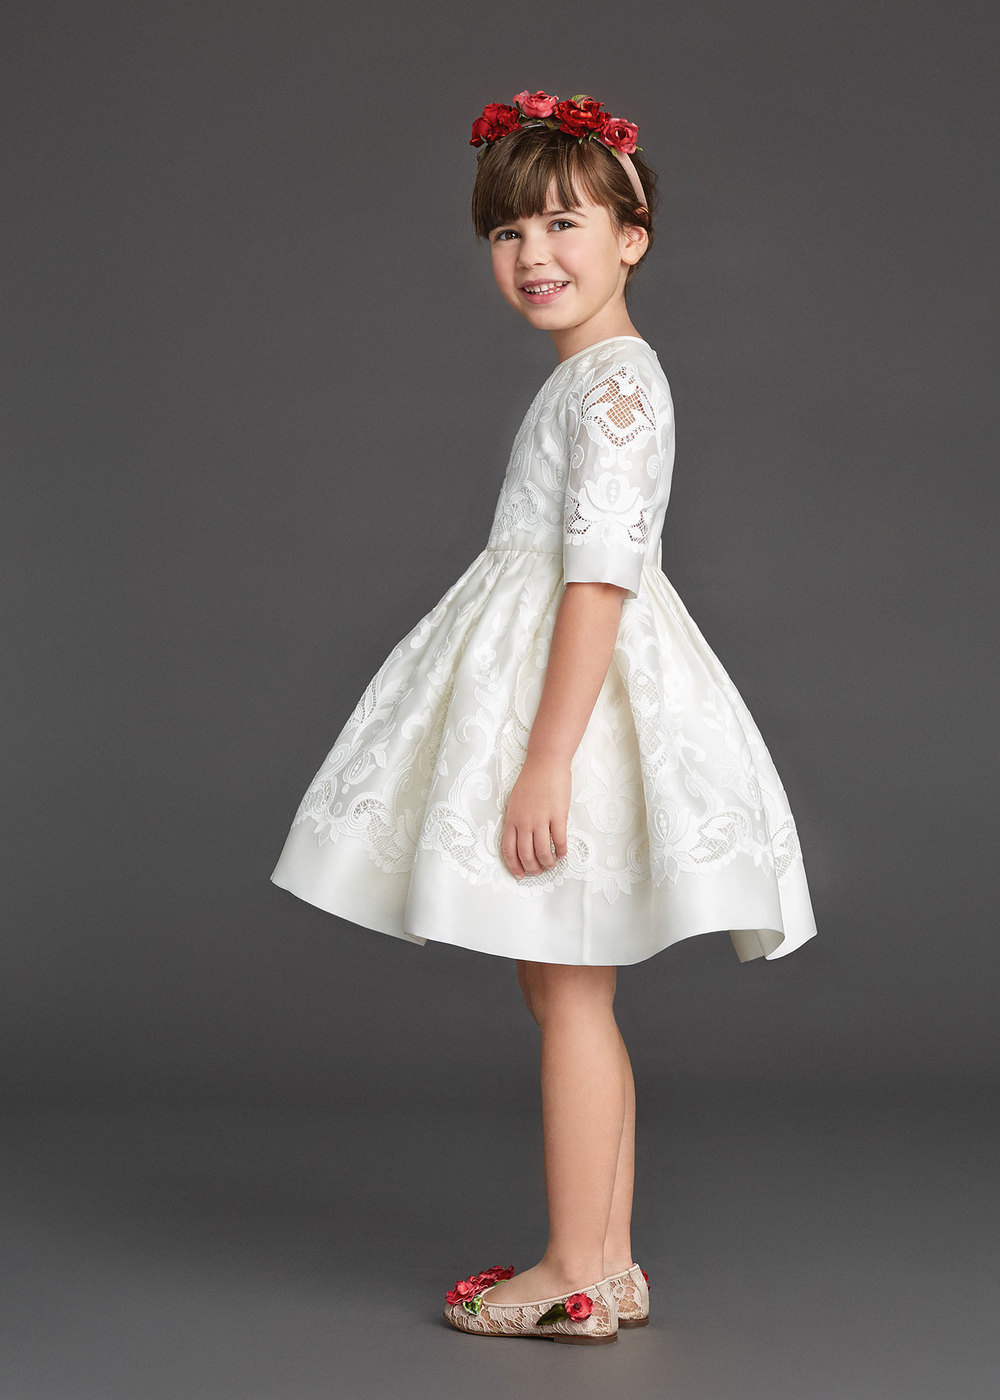 dolce-and-gabbana-winter-2016-child-collection-10-zoom.jpg